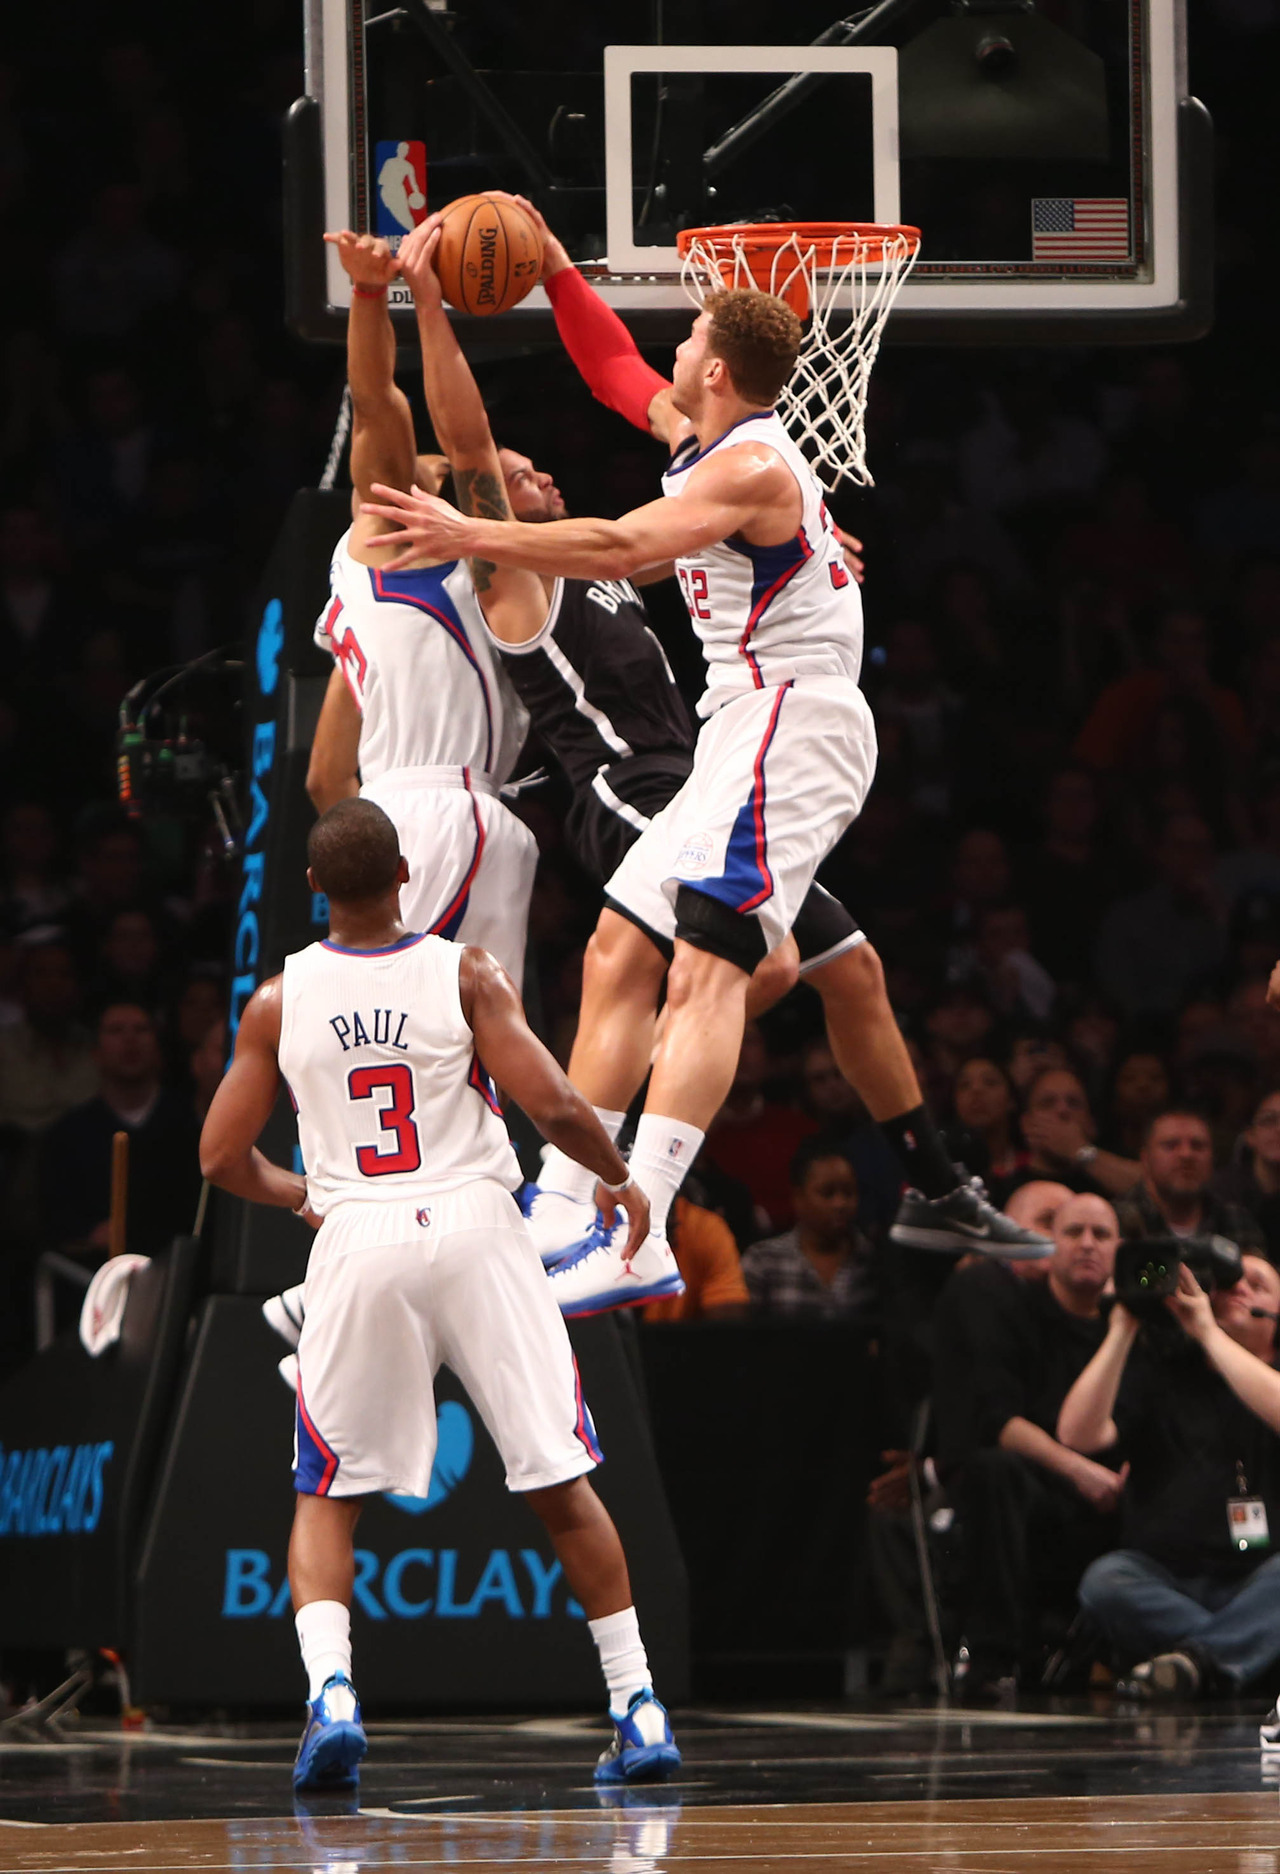 Deron Williams thought he could dunk on Blake Griffin. Blake Griffin thought otherwise.